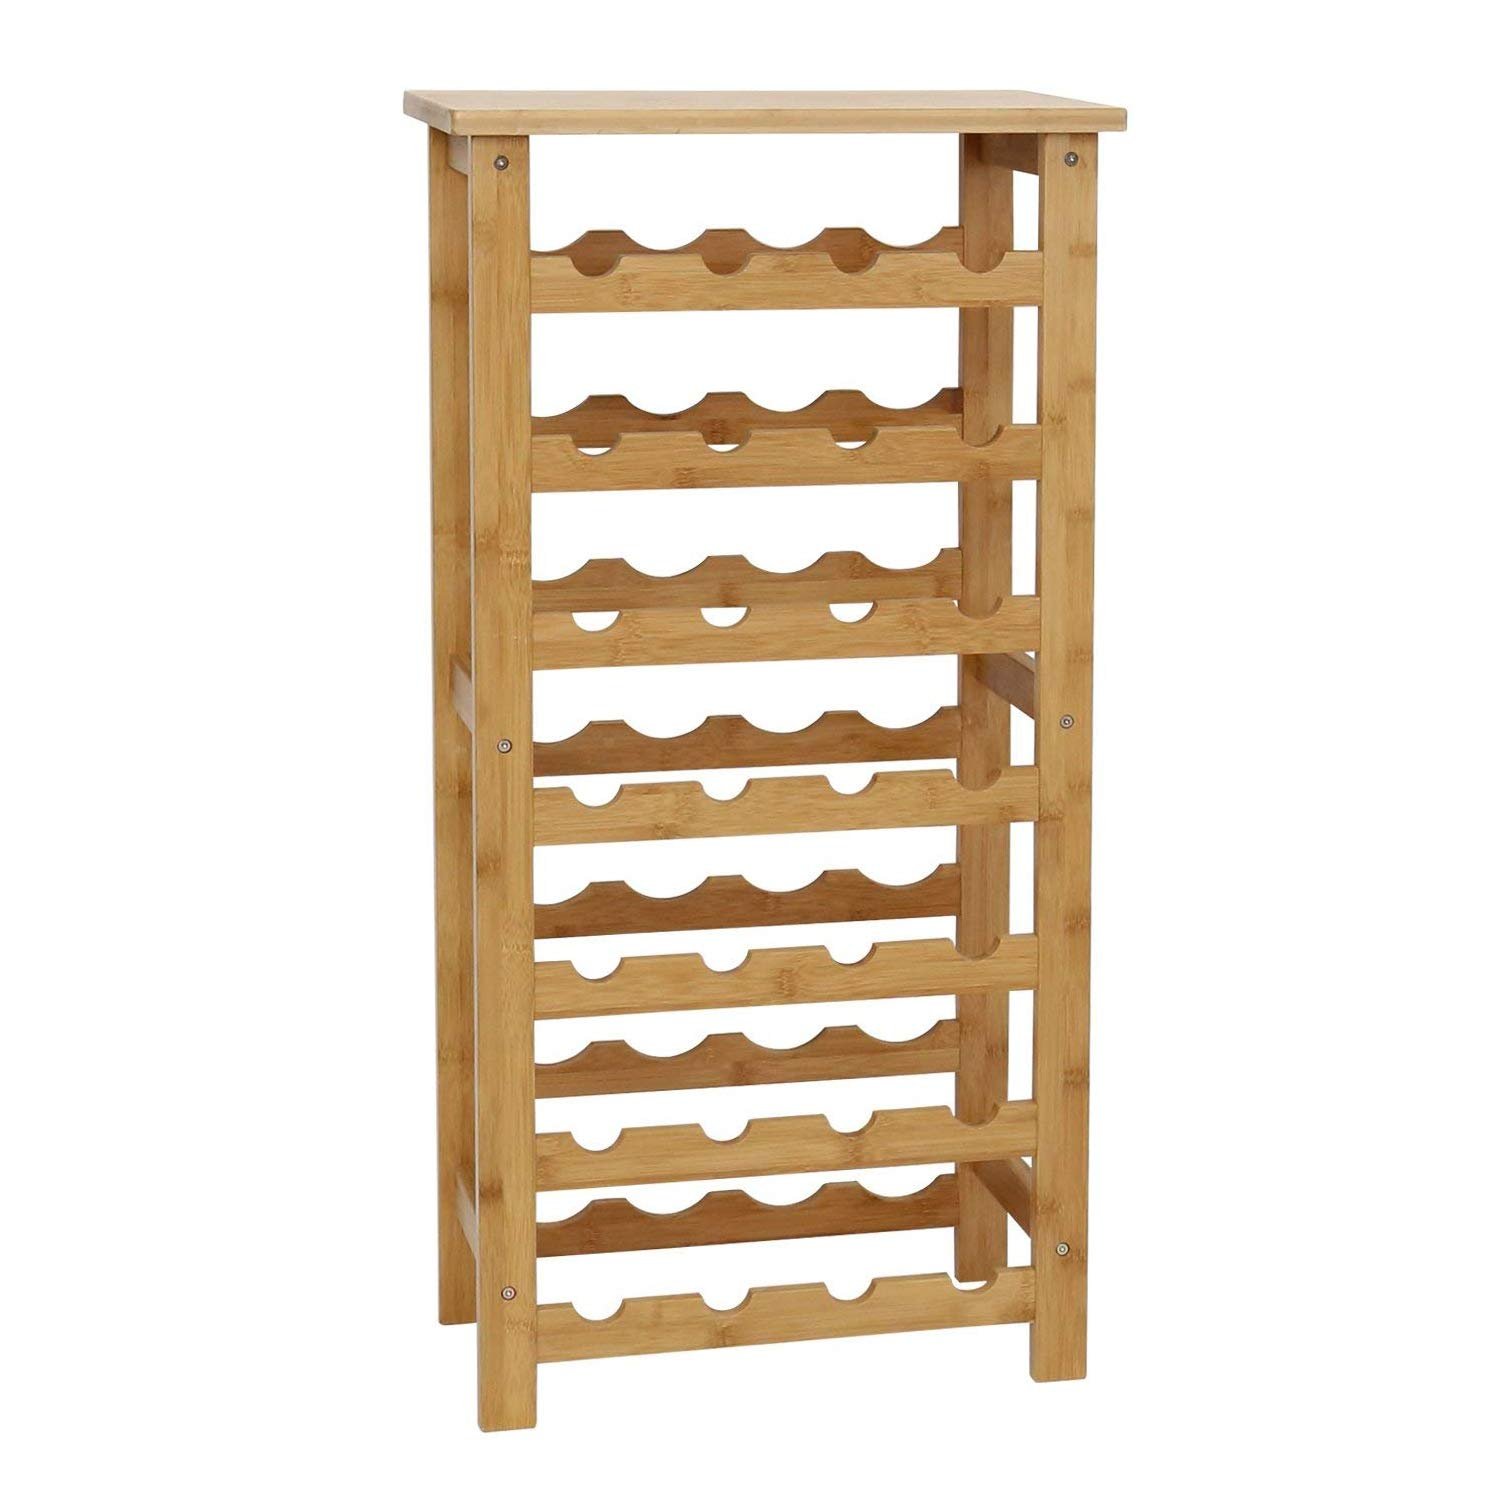 Kinbor Bamboo Wine Standing Rack Storage (28-Bottle)